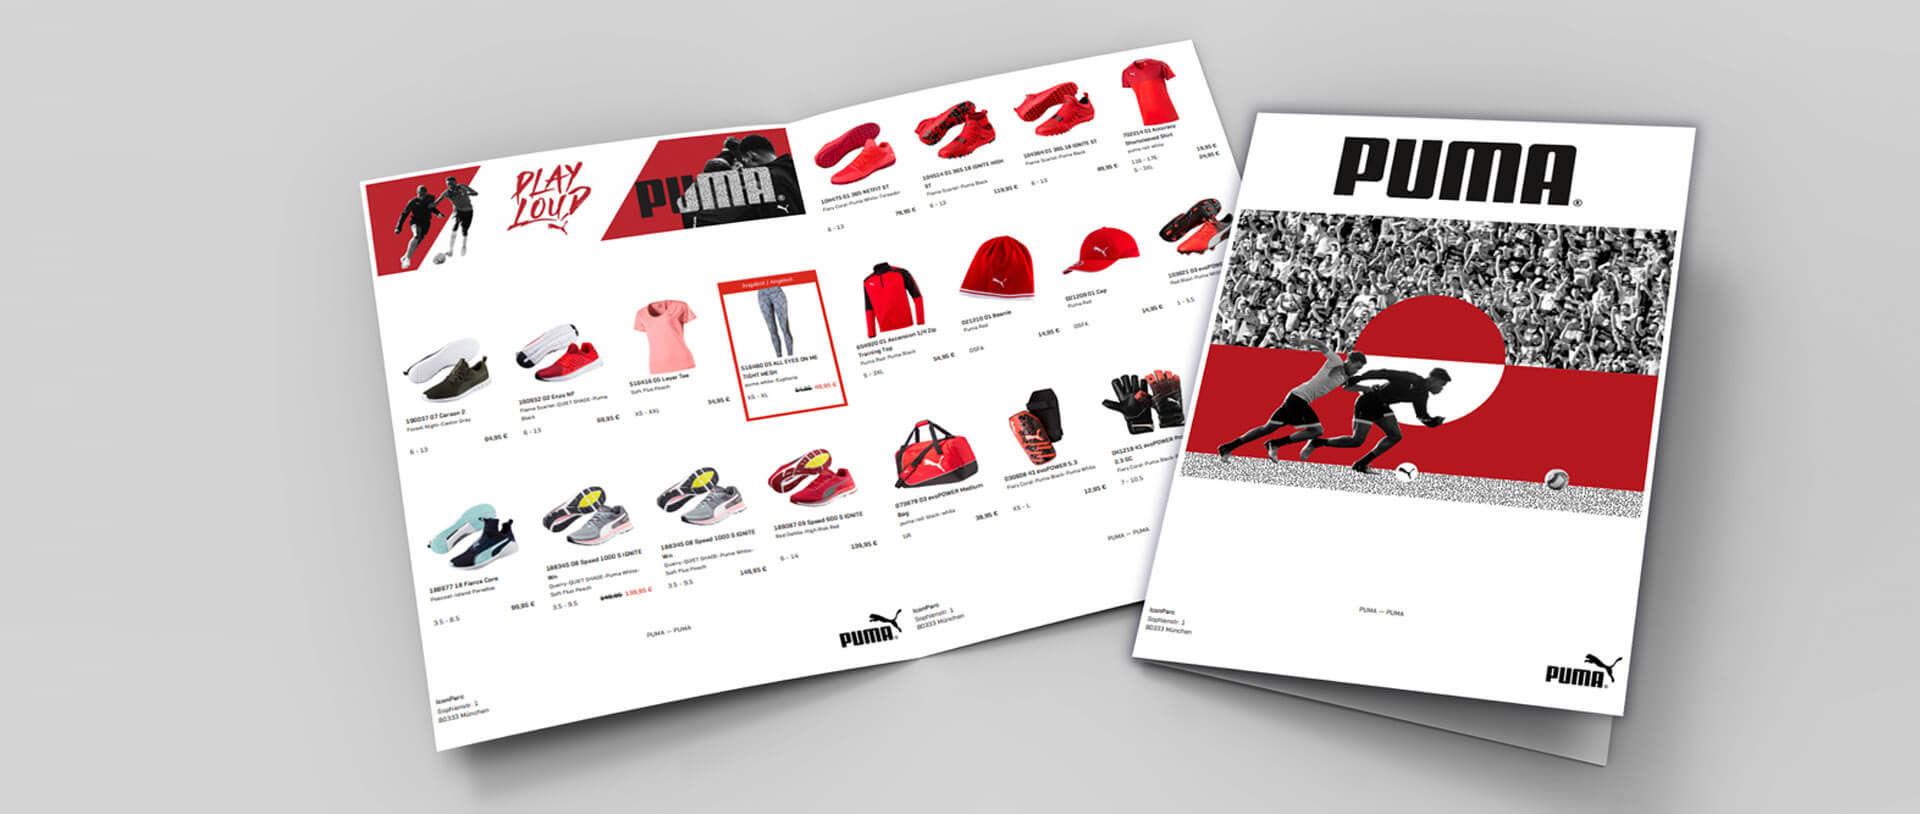 PUMA Katalog by IconParc